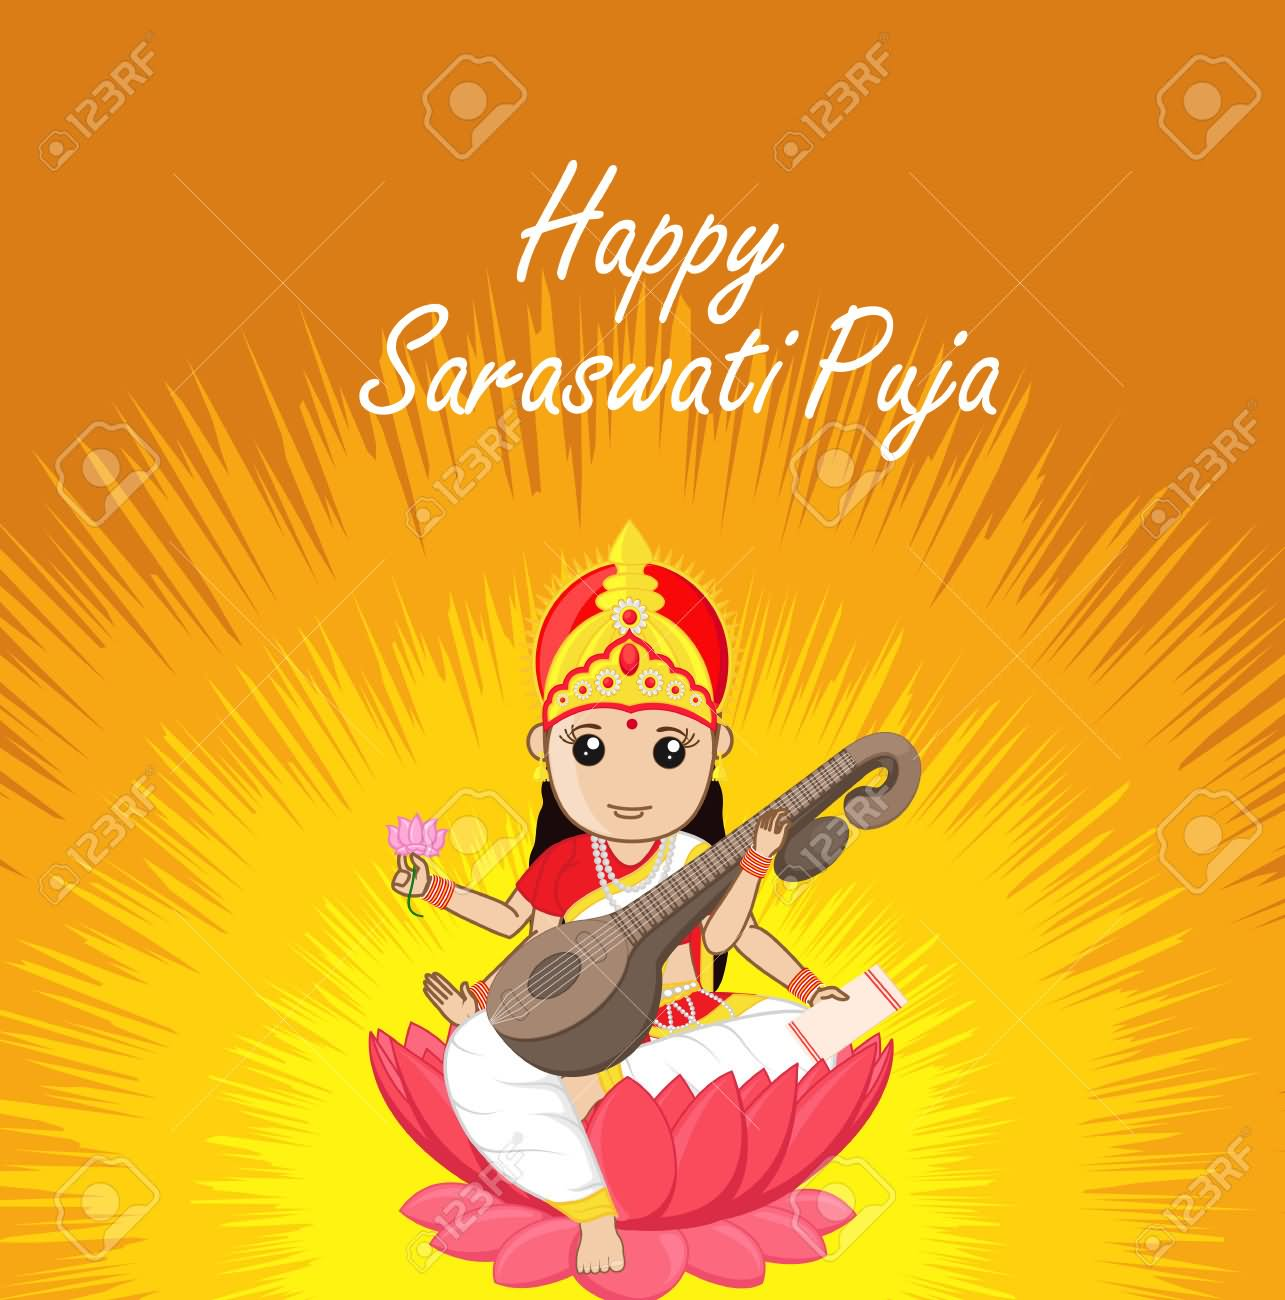 22 Most Adorable Saraswati Puja Greeting Pictures And Photos